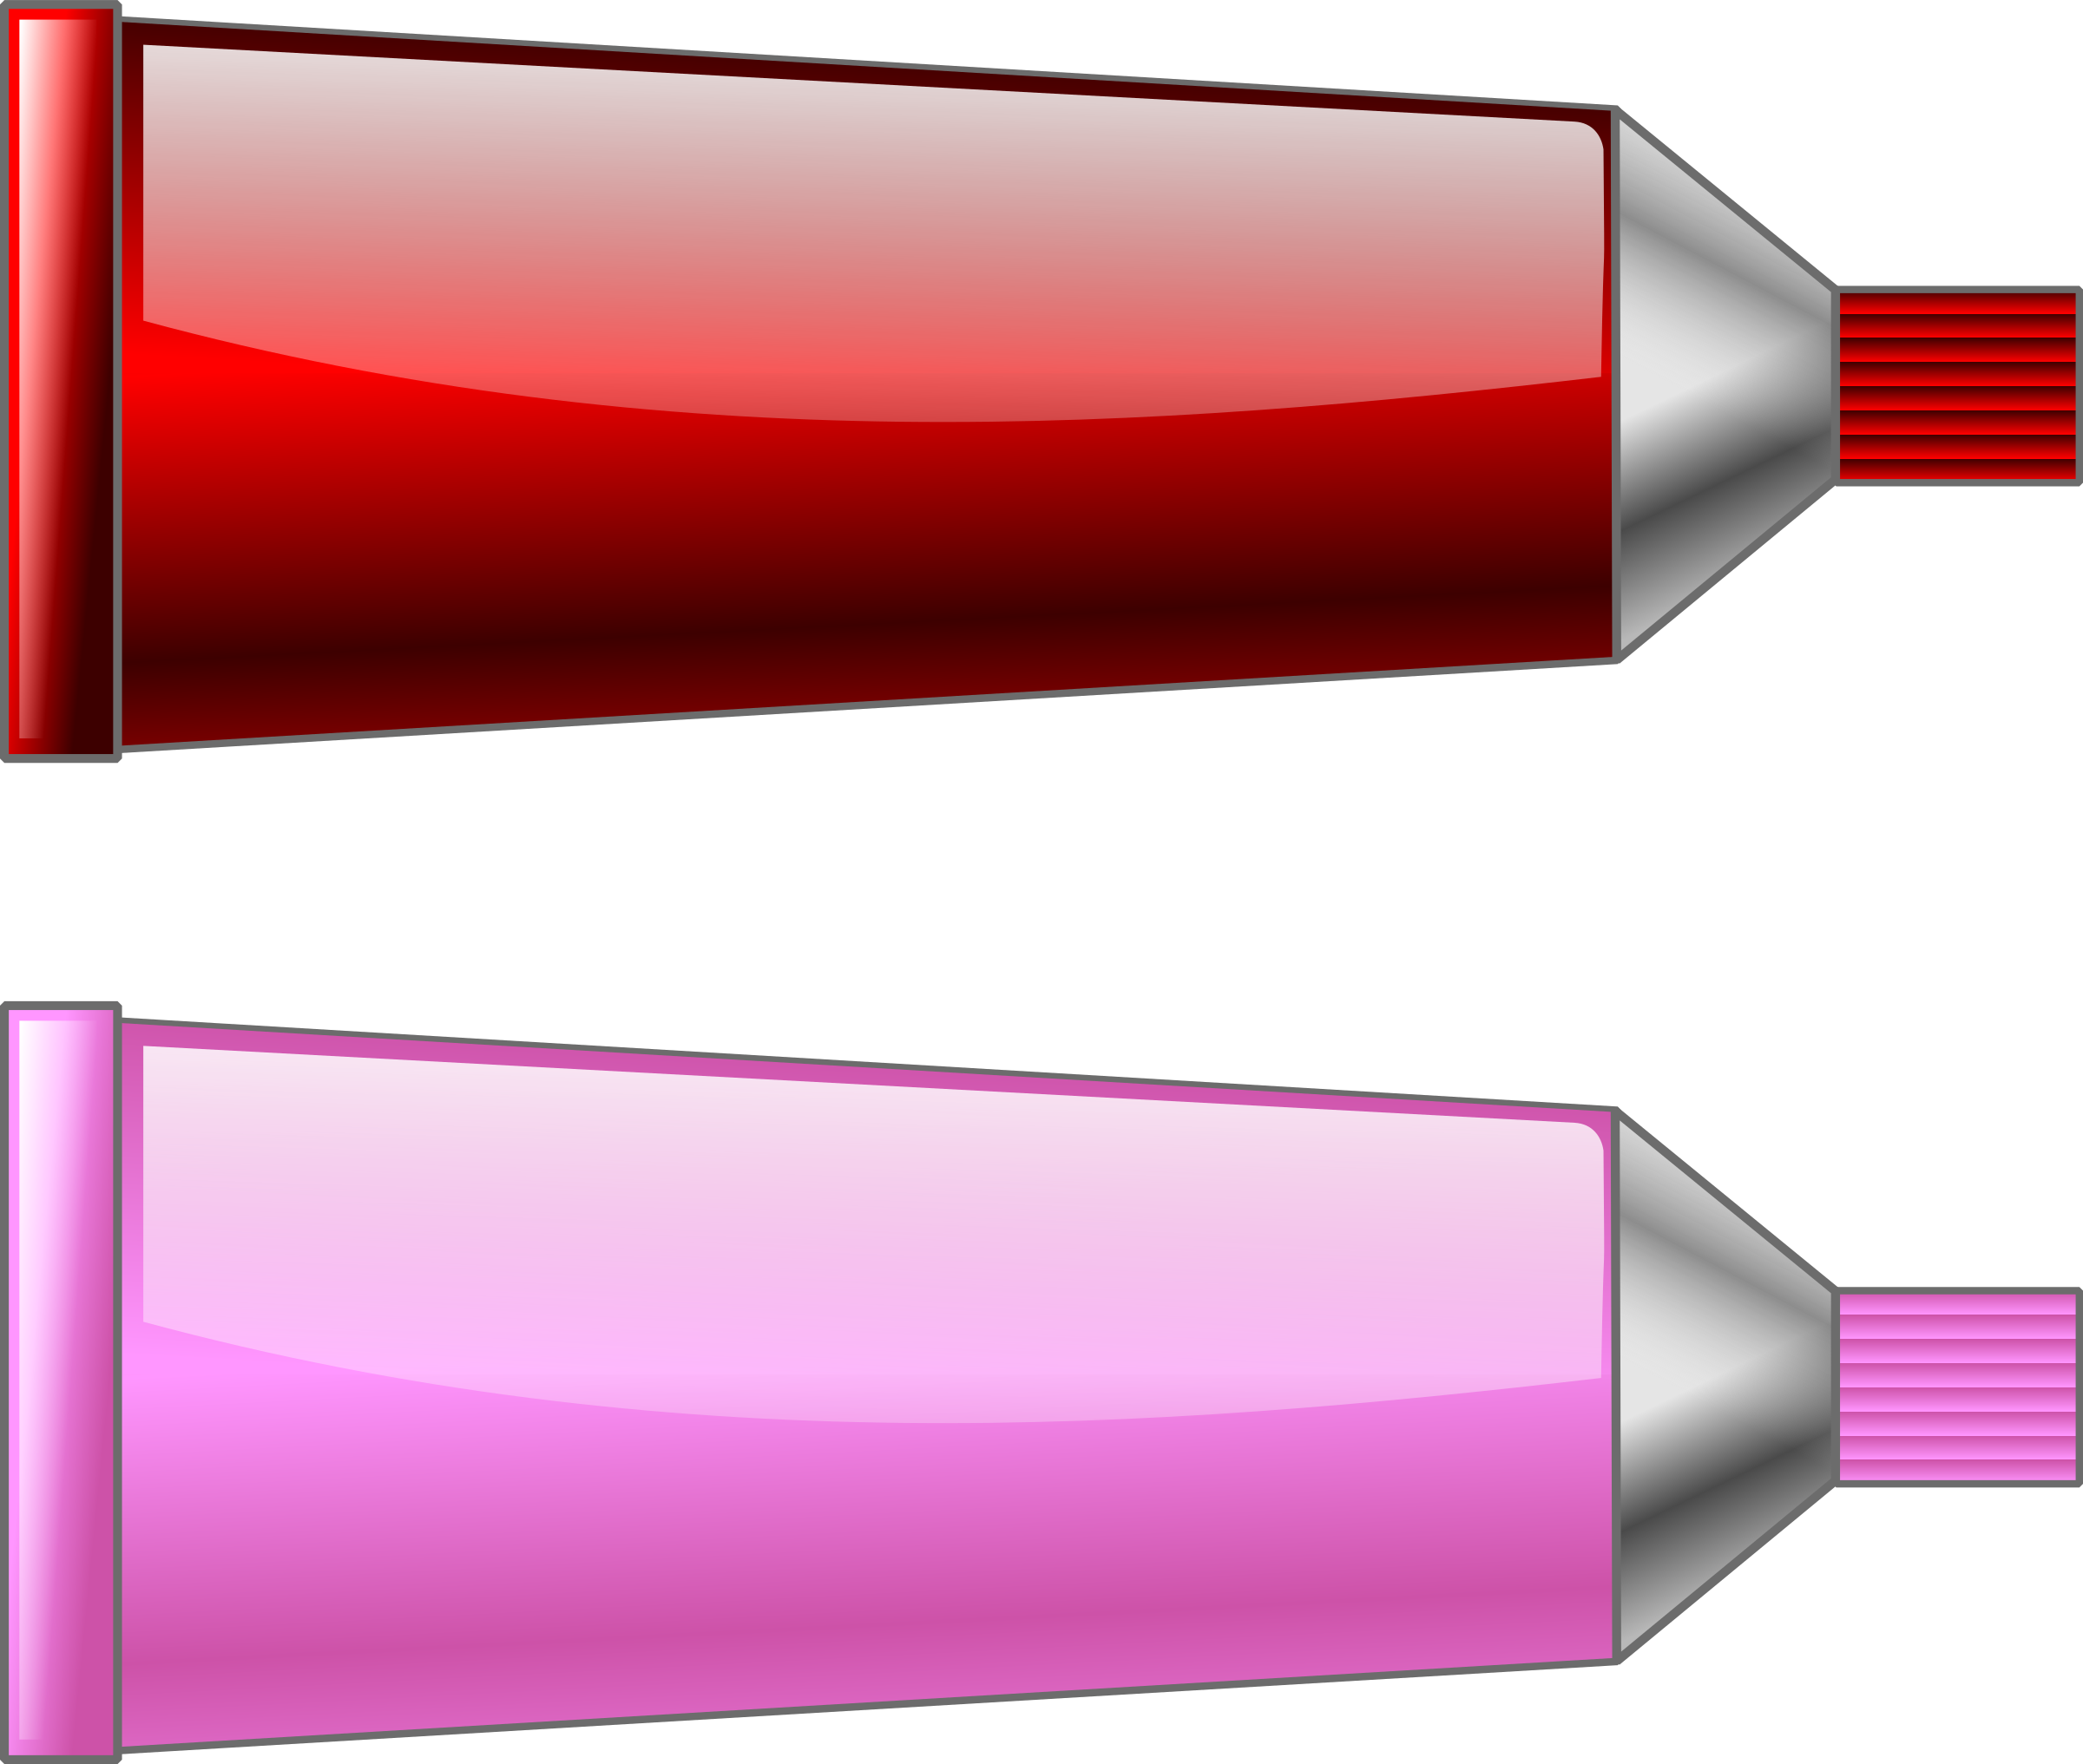 Color tube RedPink by TrnsltLife